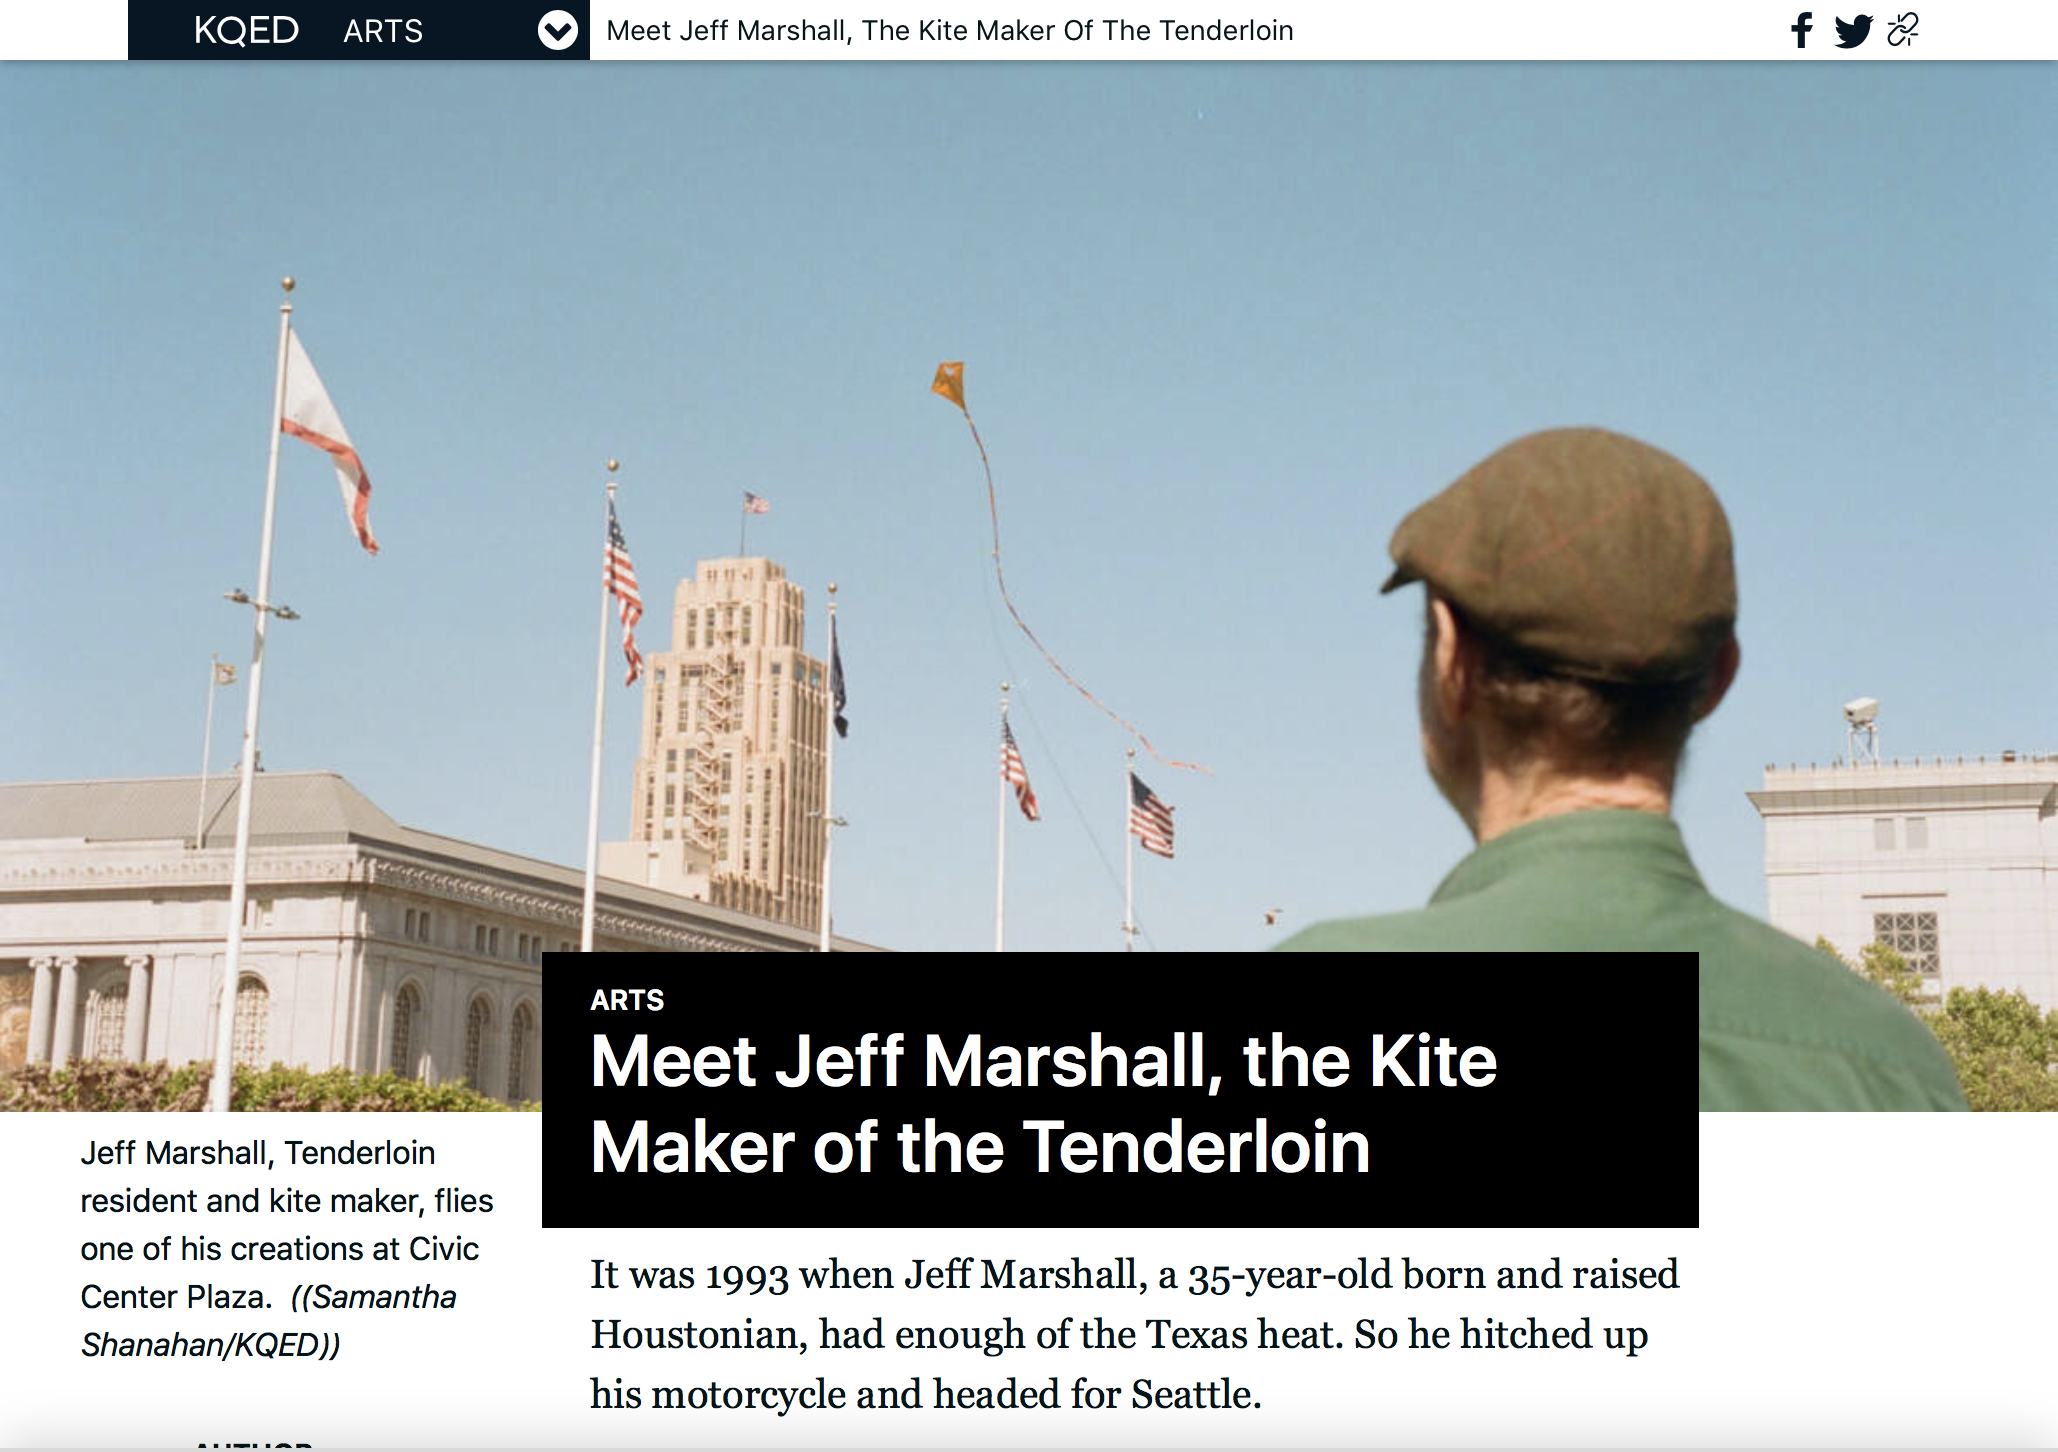 (KQED/Arts): Meet Jeff Marshall, the Kite Maker of the Tenderloin